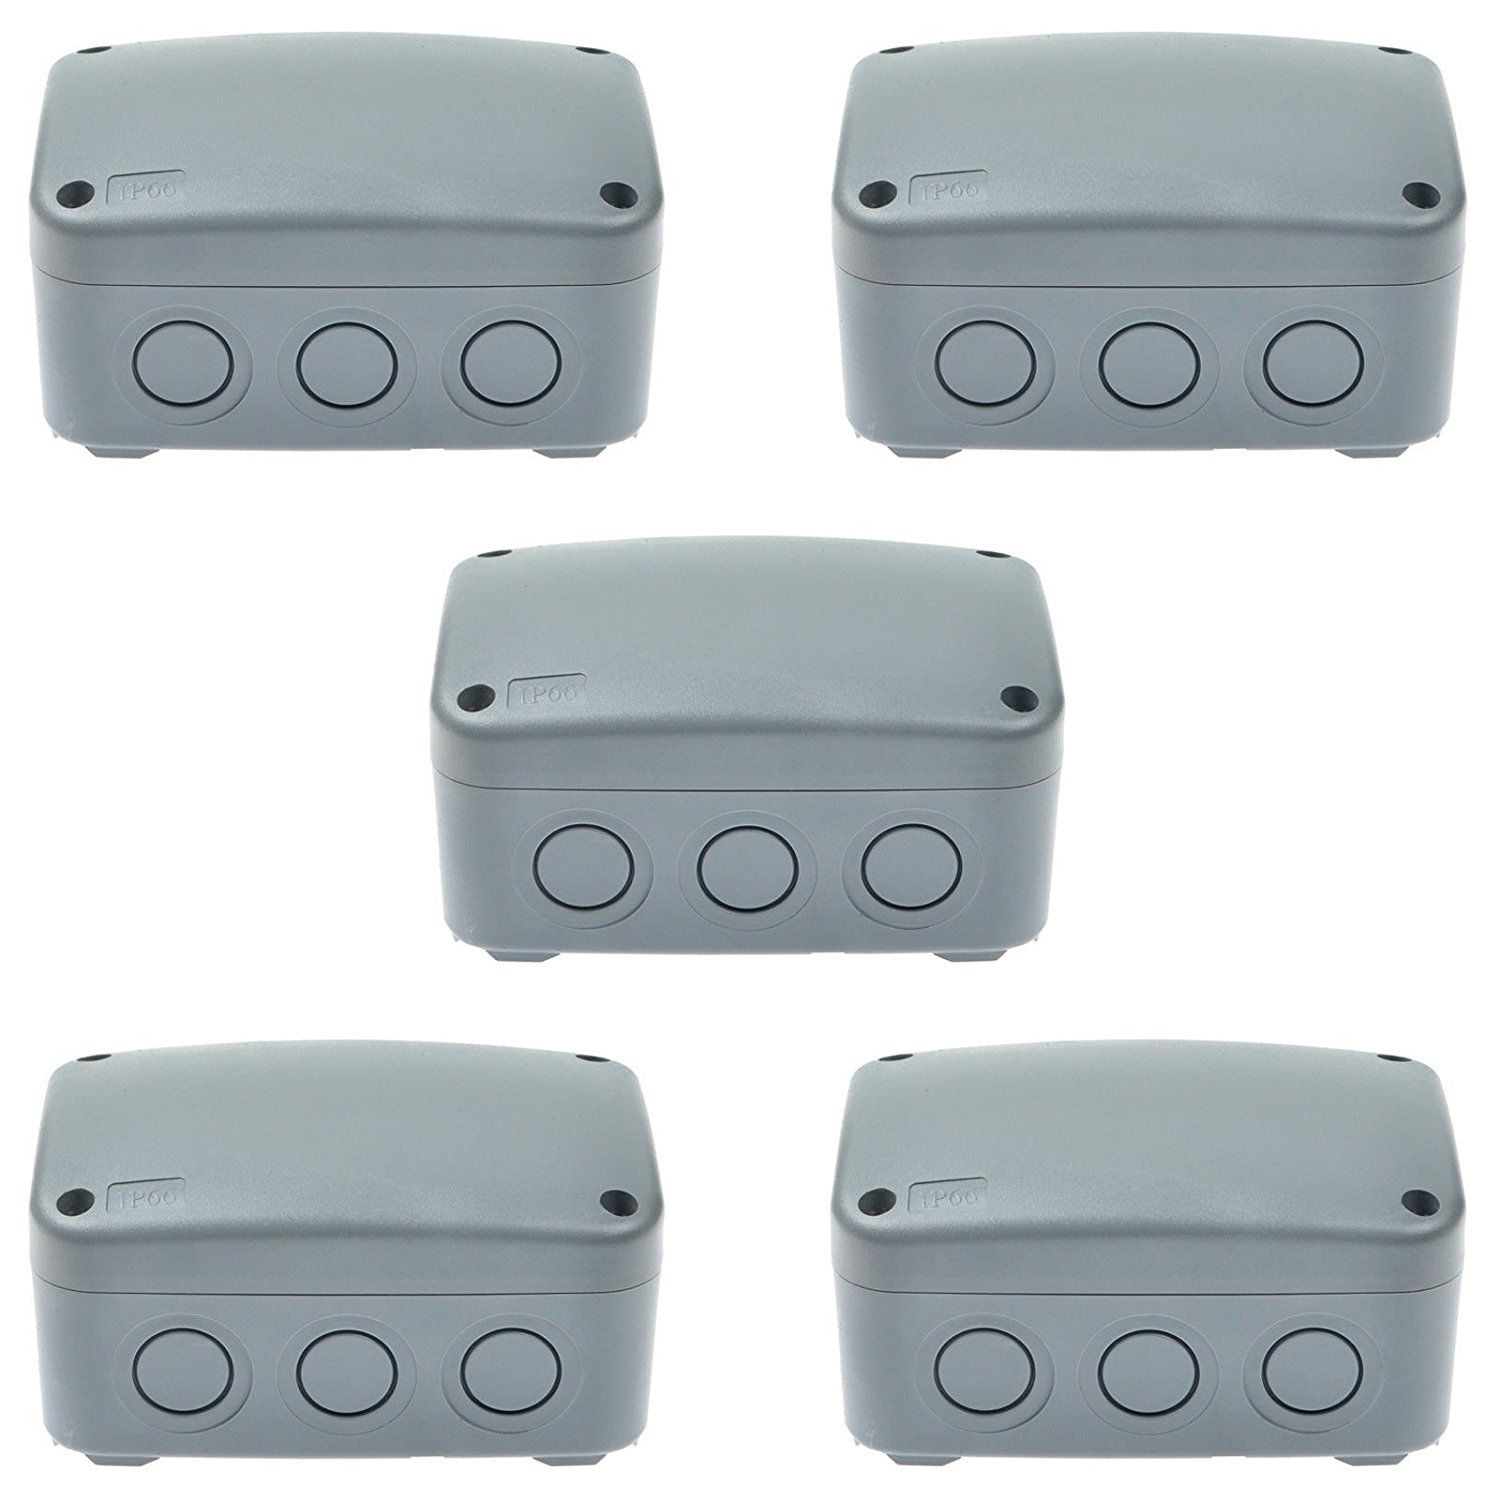 GREENCYCLE 5 Pack IP66 Rated Plastic Weatherproof Junction Box Fit for Outdoor Use, 1258662mm